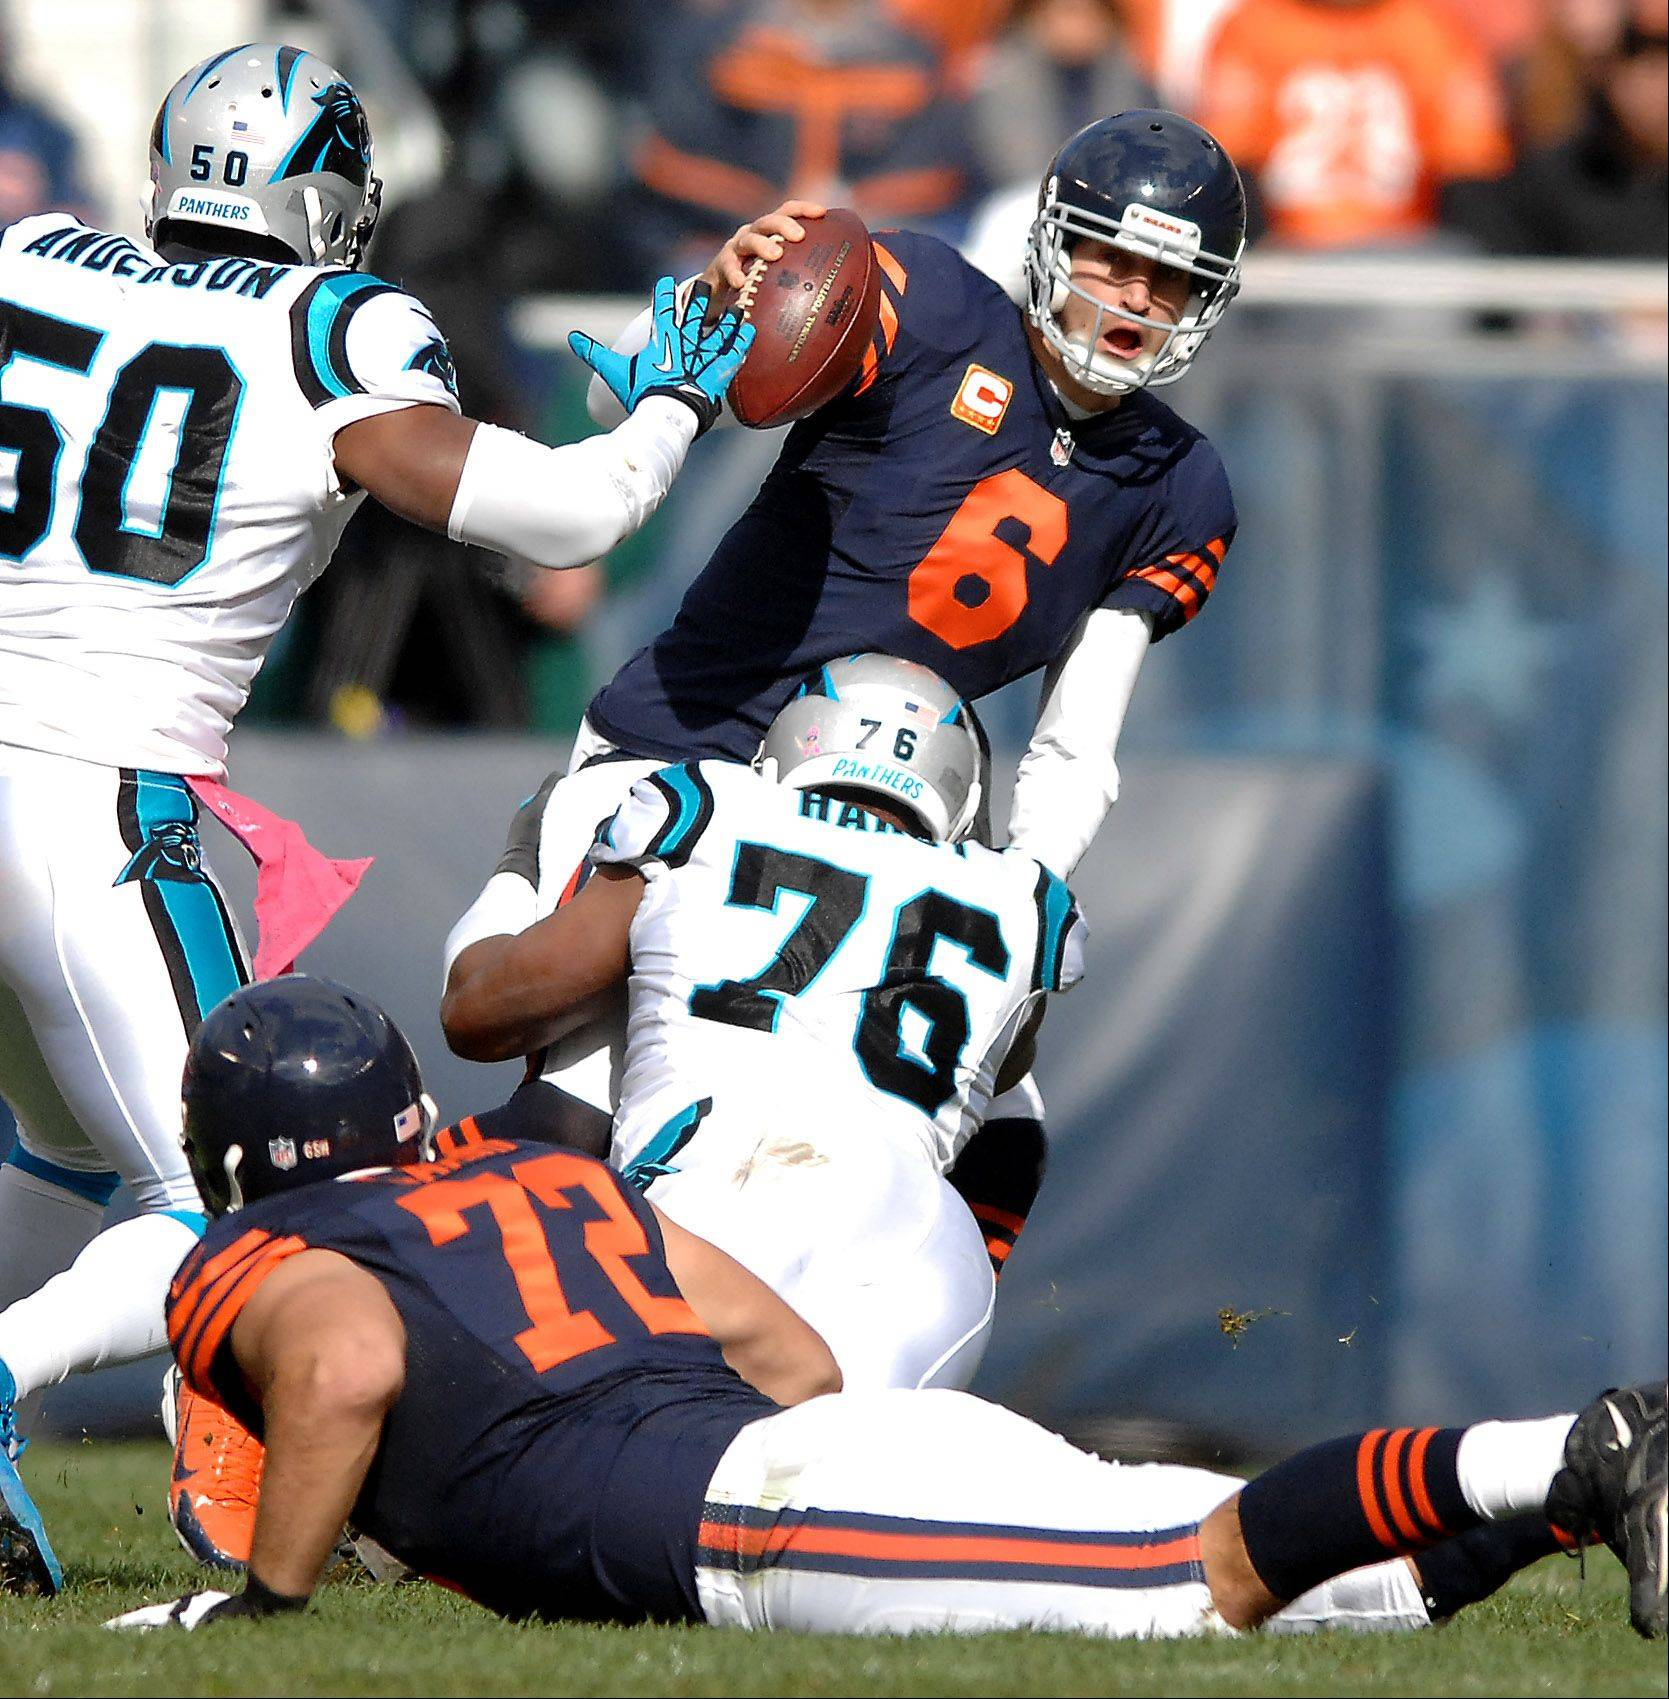 Chicago Bears quarterback Jay Cutler (6) is sacked by Carolina Panthers defensive end Greg Hardy (76) during Sunday�s game at Soldier Field in Chicago.